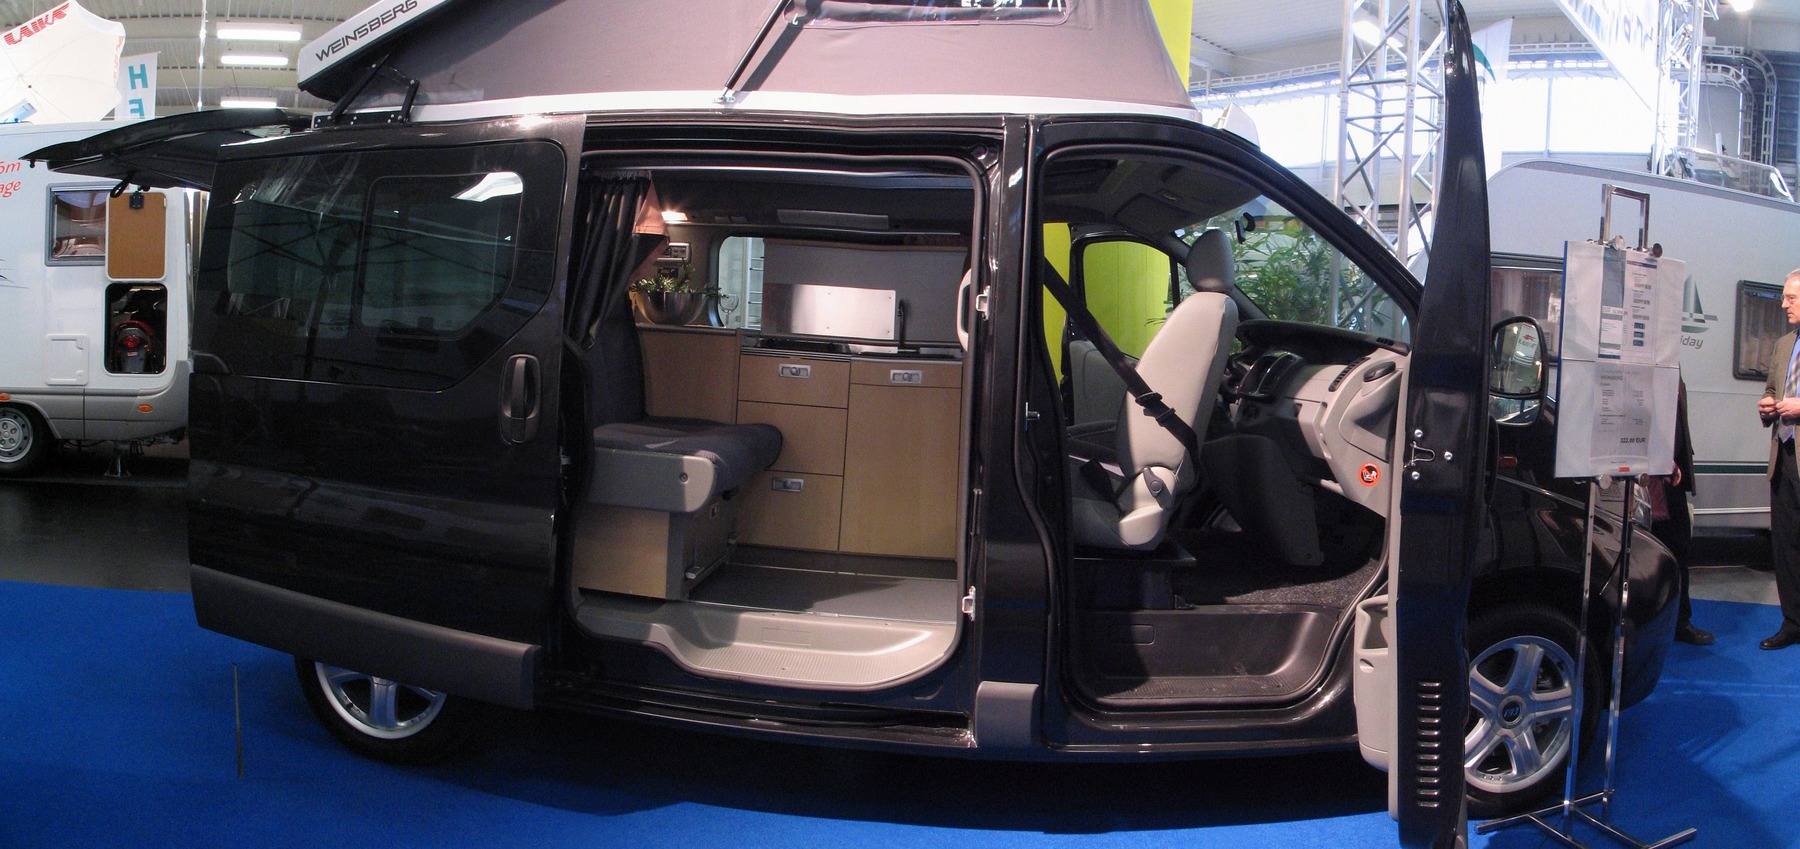 renault trafic camping bus from weinsberg. Black Bedroom Furniture Sets. Home Design Ideas